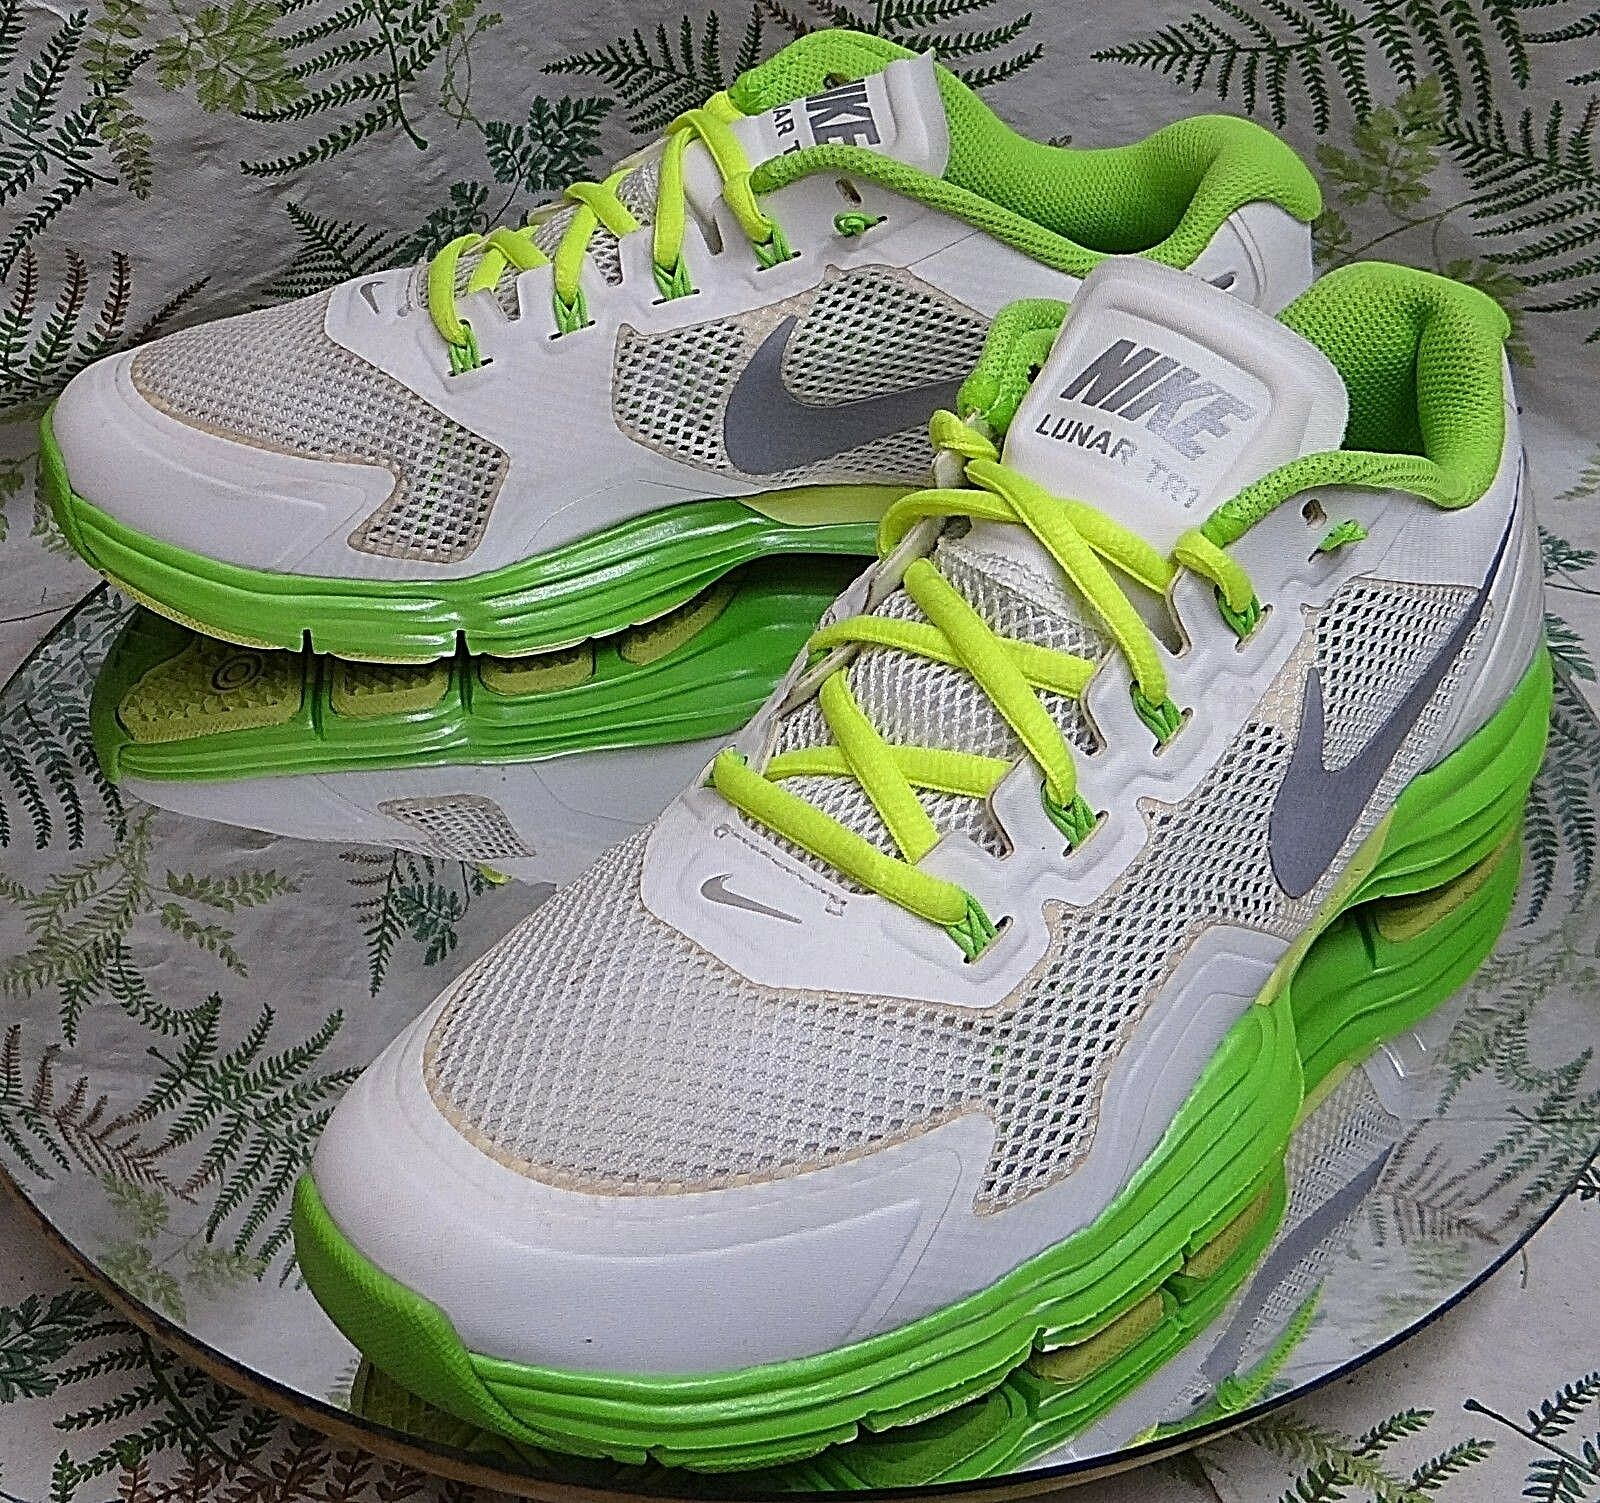 NIKE LUNAR TR1 2012 FASHION GREEN WHITE SNEAKERS FASHION 2012 SHOES US MENS  SZ 10.5 115f9b d99cff522